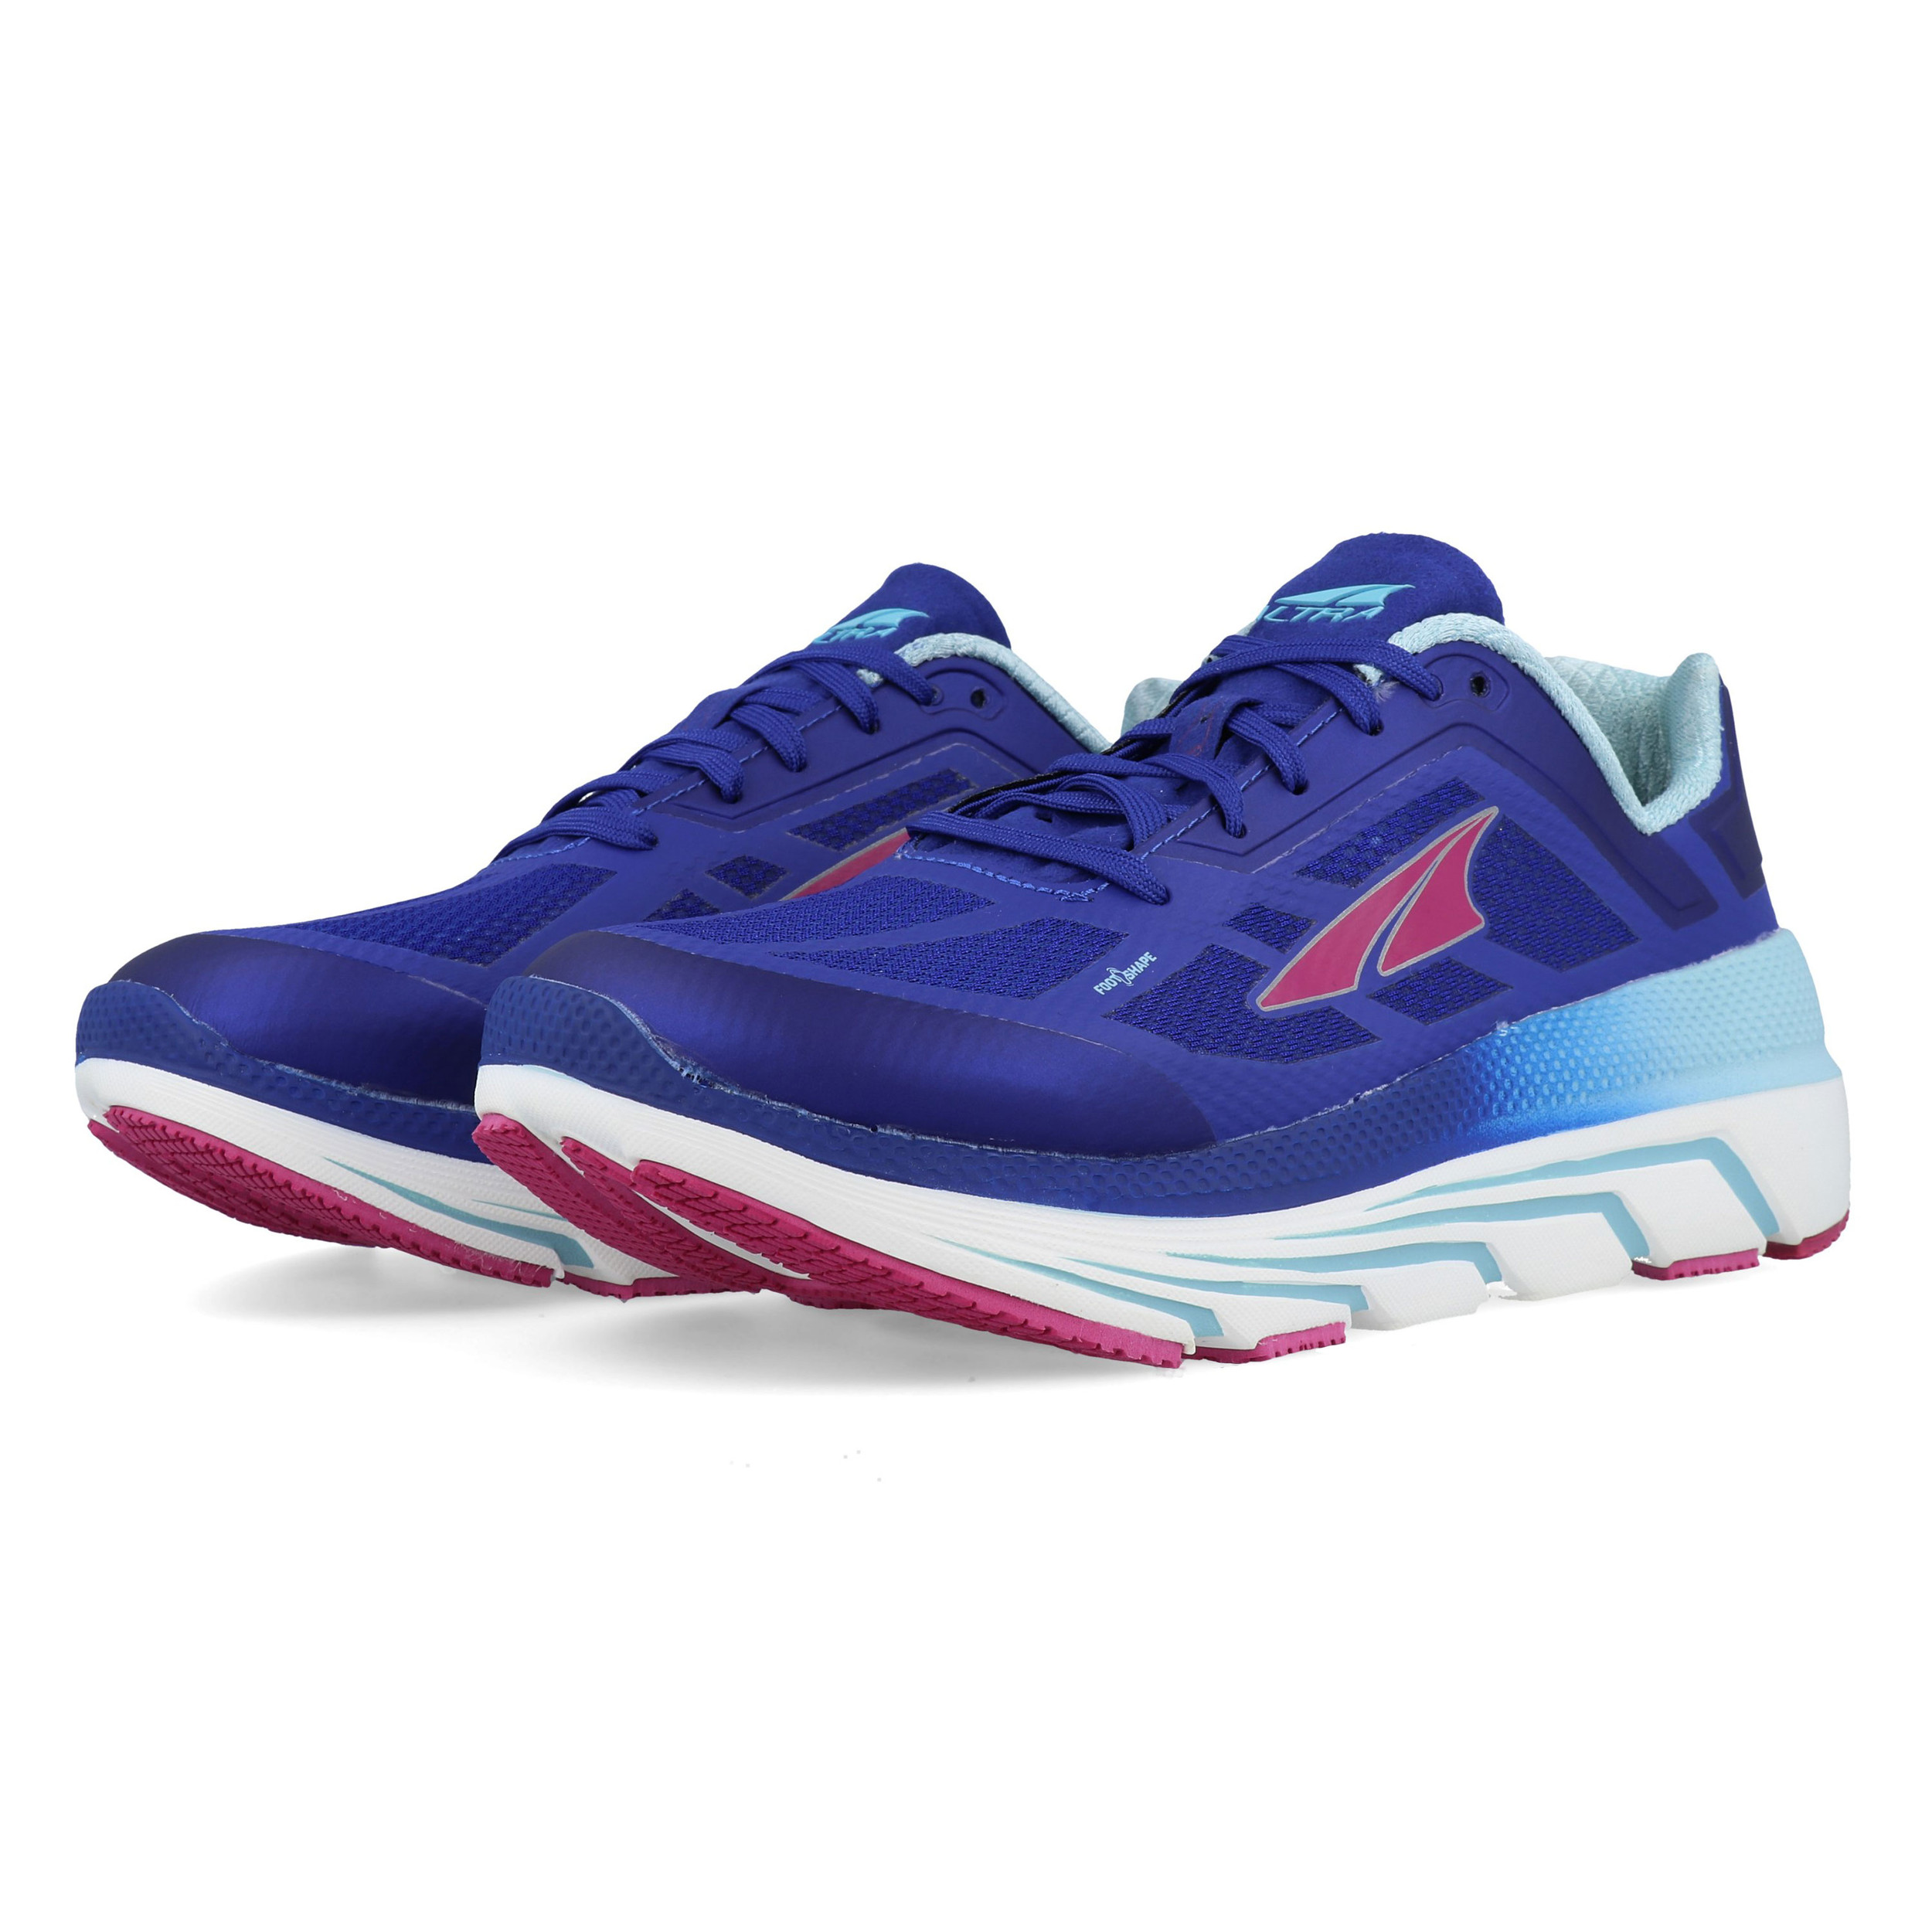 Altra - Duo | cycling shoes